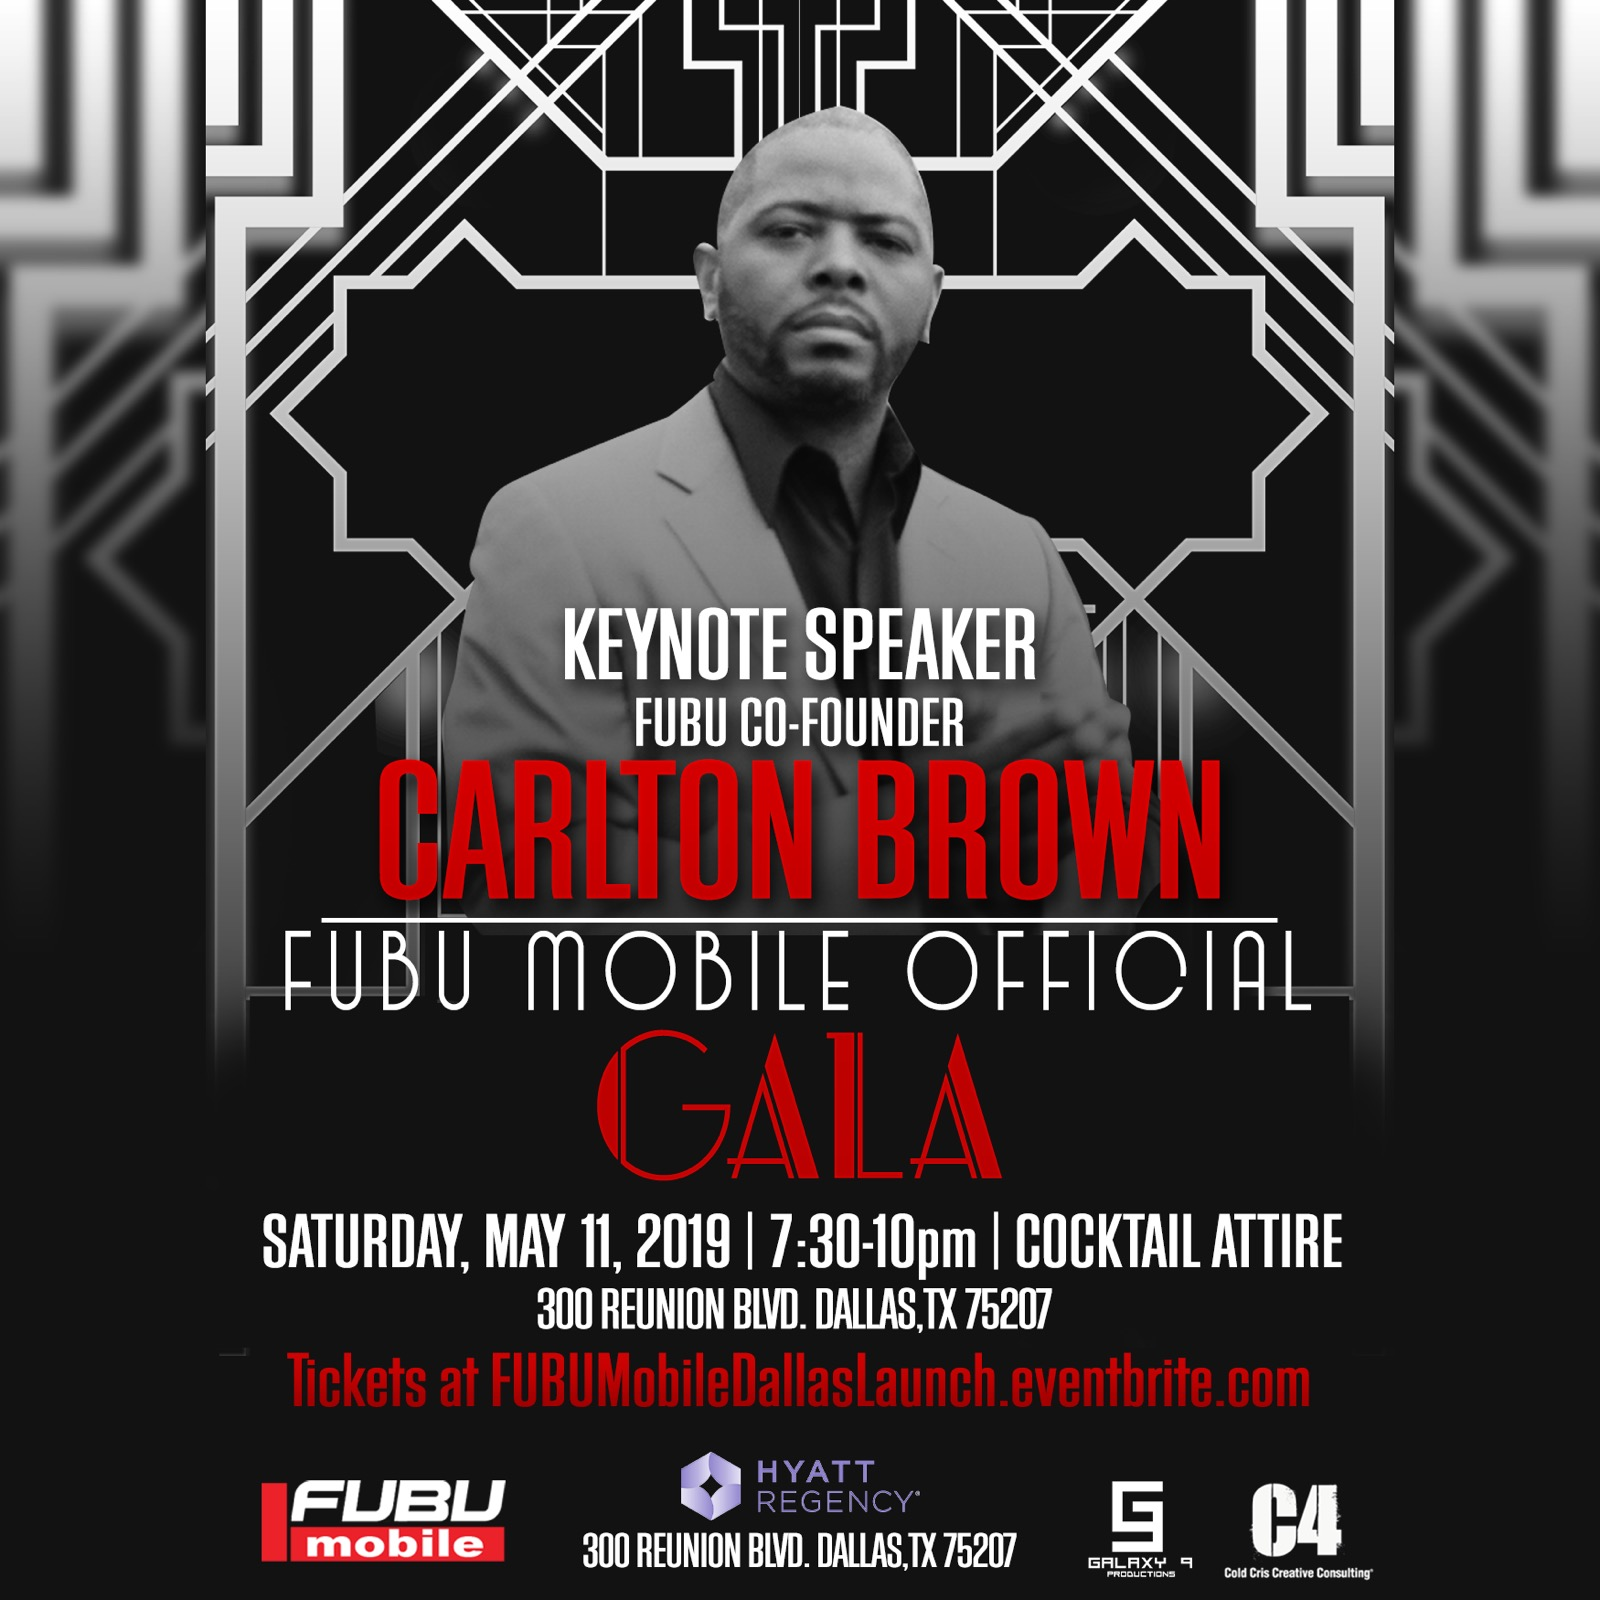 FUBU Expands Its Brand Offering with Launch of FUBU Mobile DFW Celebrations Include Star-studded Gala and After Party 5